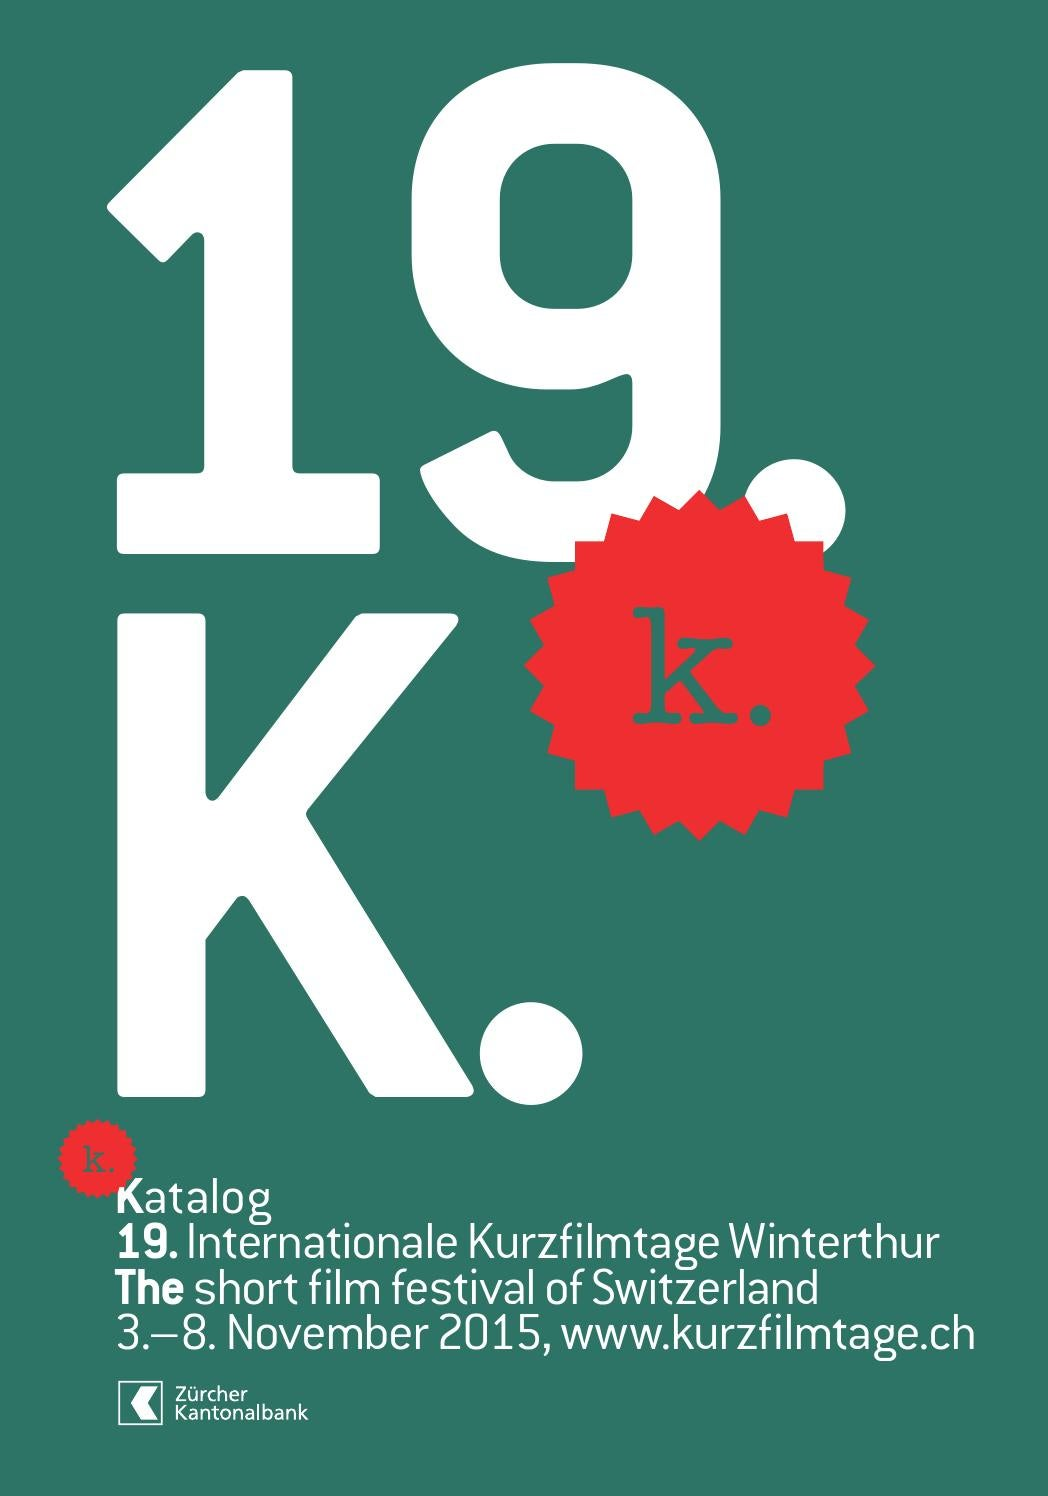 Katalog 19 Internationale Kurzfilmtage Winterthur By Int Kurzfilmtage Winterthur The Short Film Festival Of Switzerland Issuu